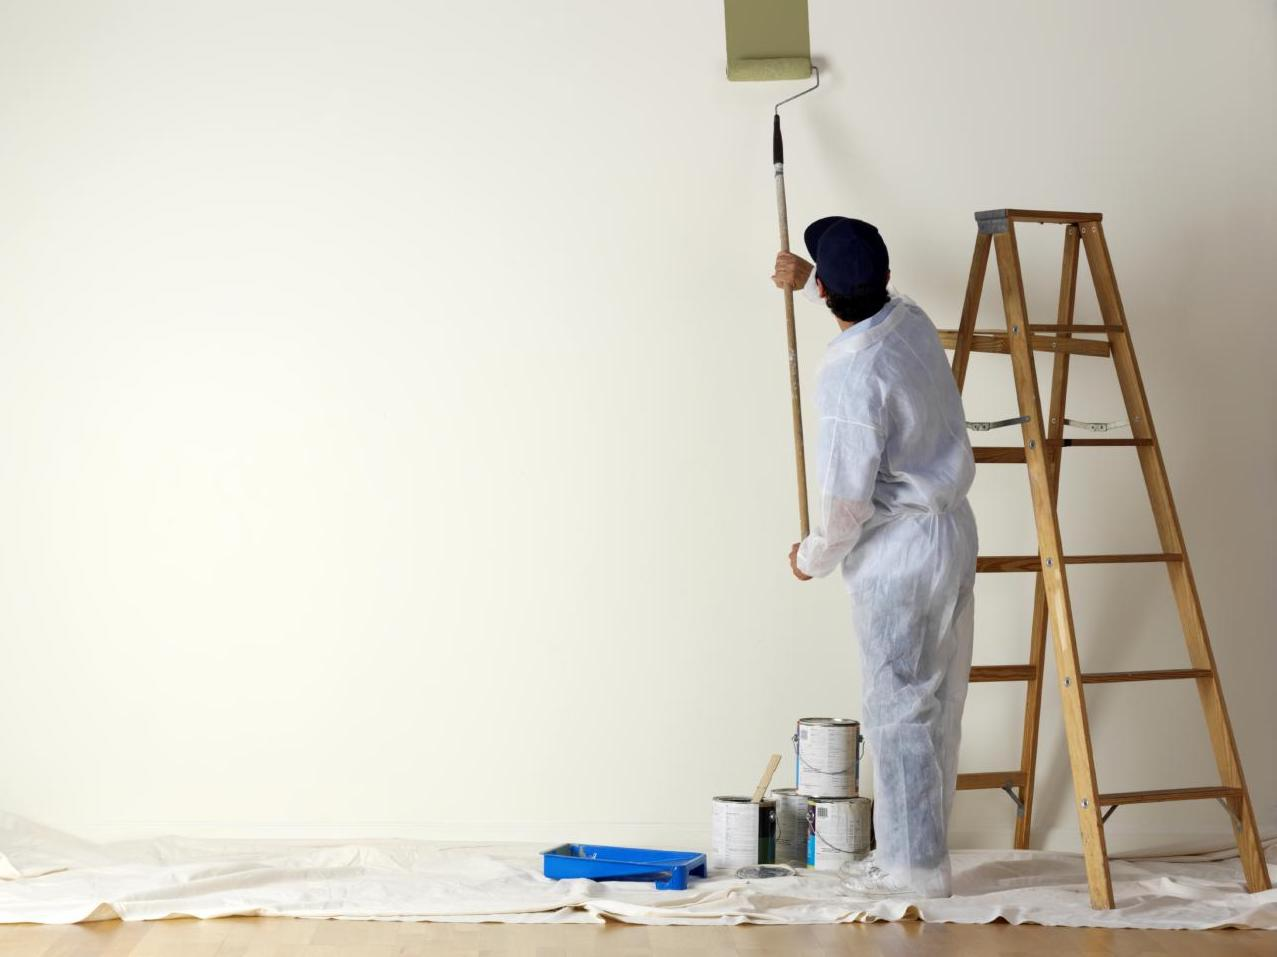 painting services with free estimate and warranty roofing services near forney, tx